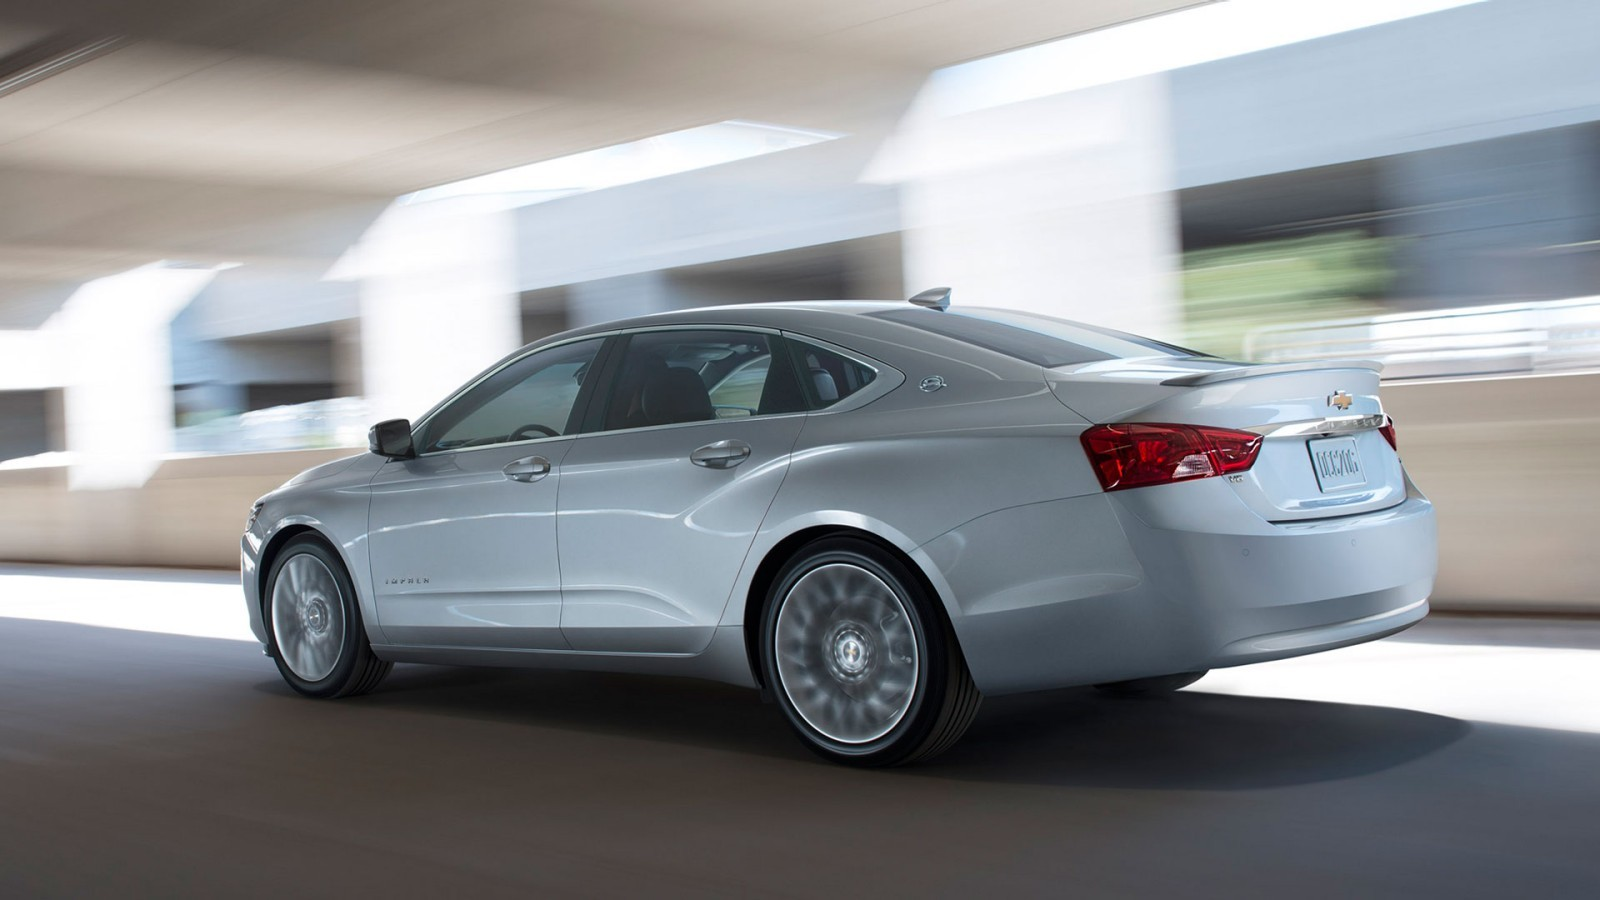 2016 Chevrolet Impala near Everett at Chuck Olson Chevrolet